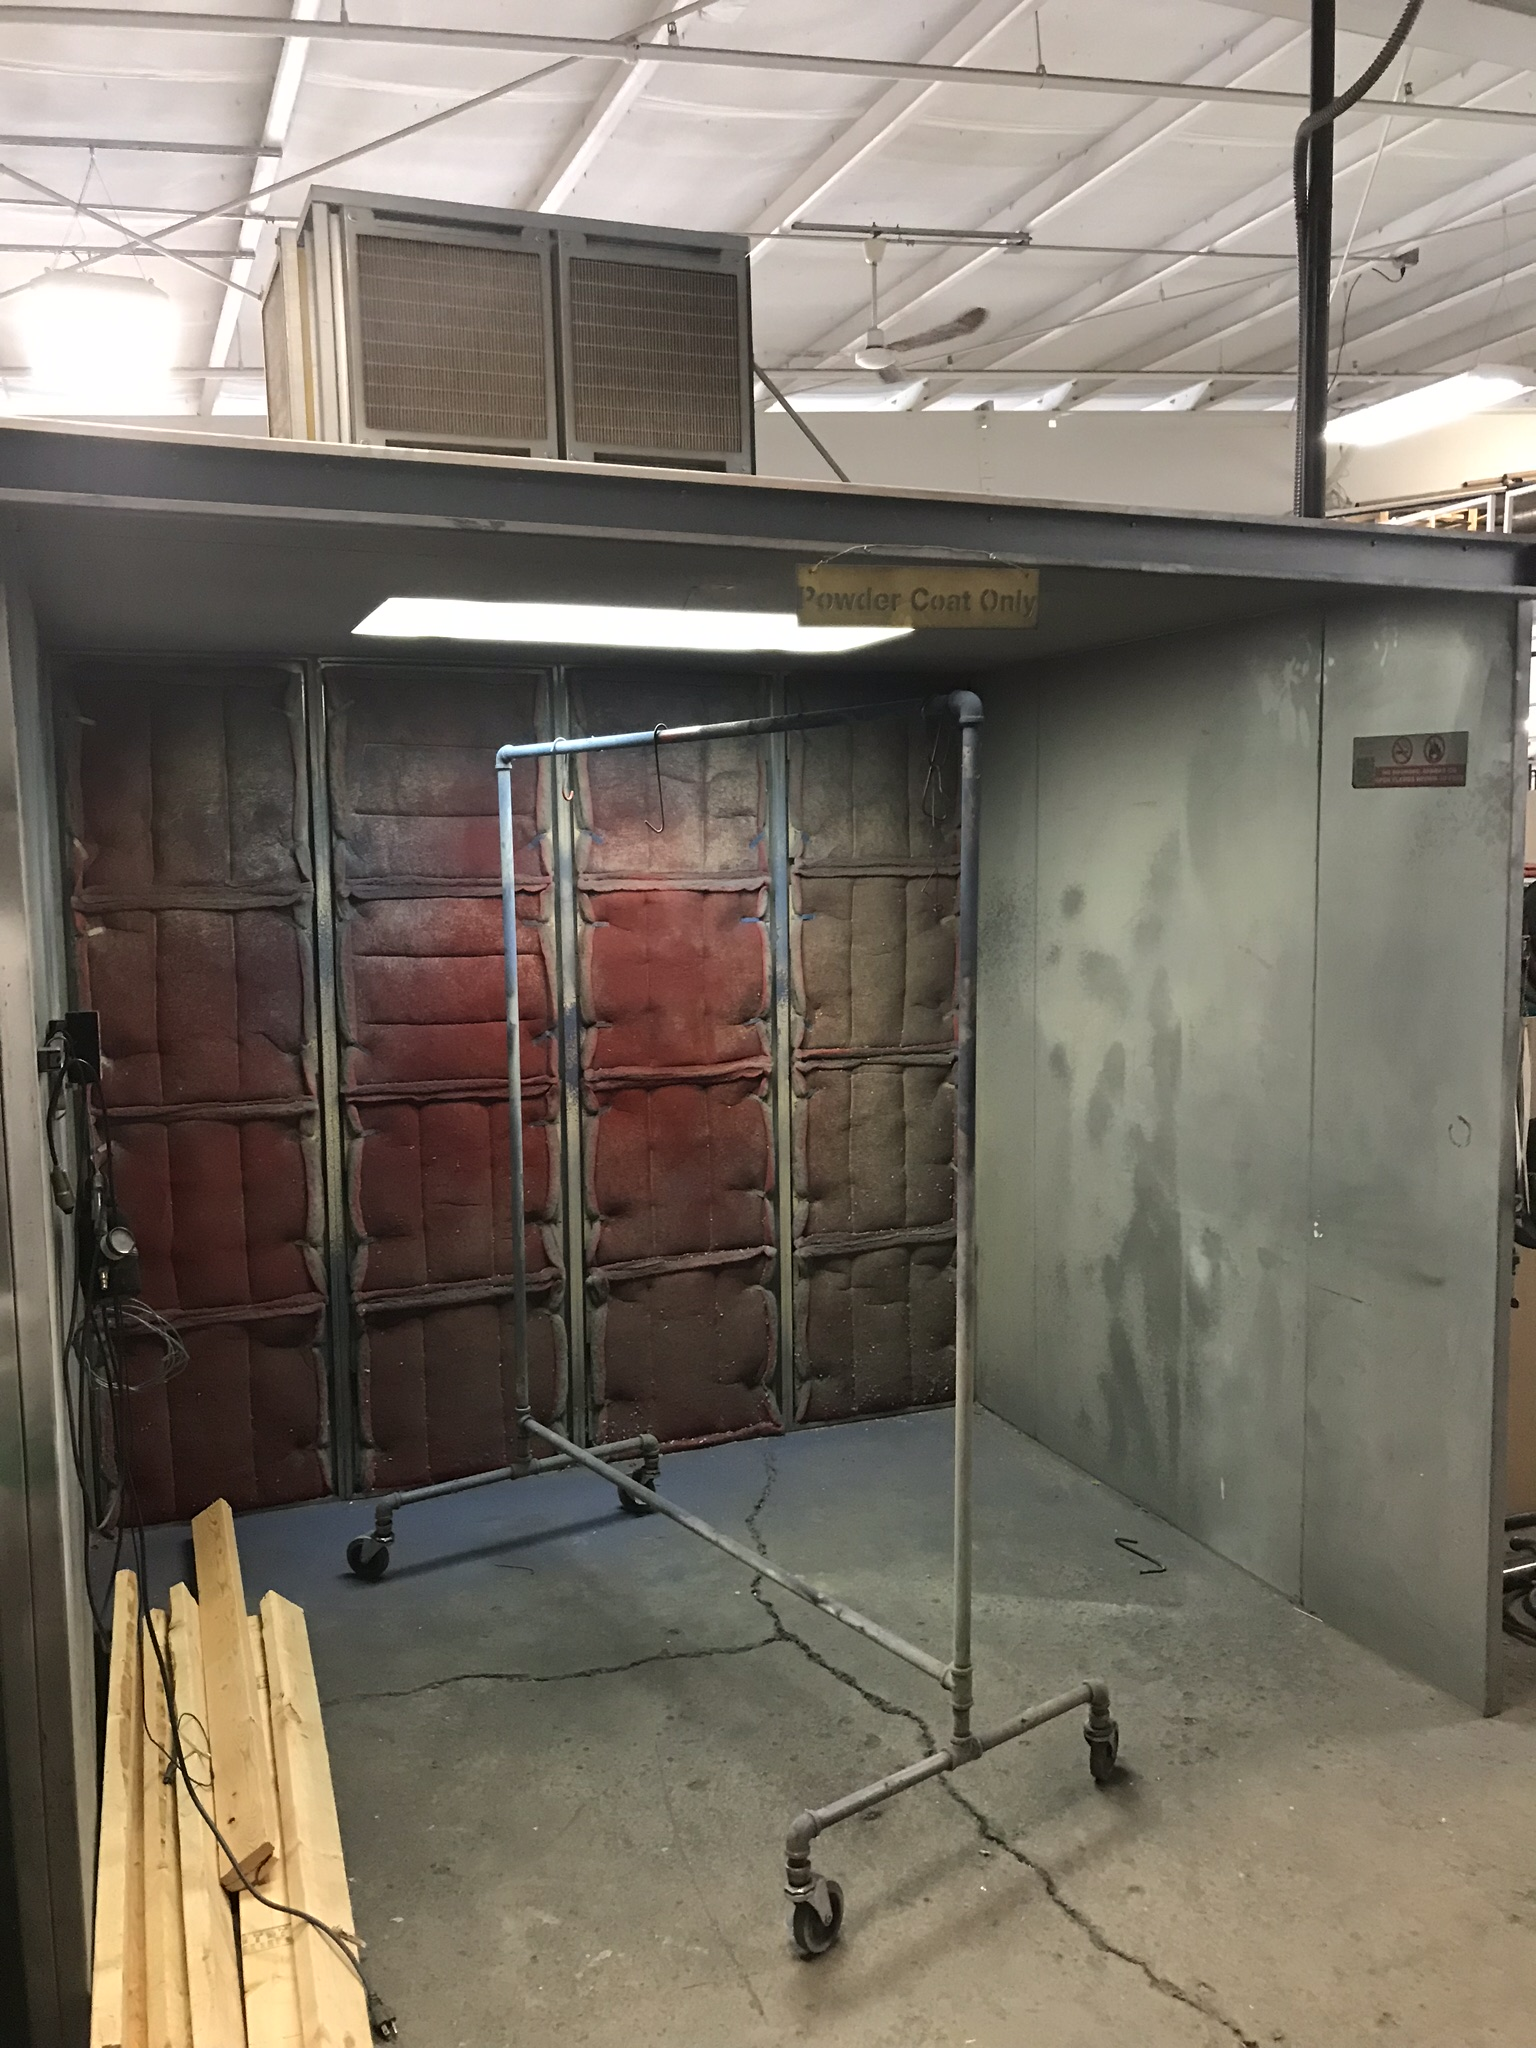 Eastwood Powder Coat Booth with Booth Mounted Filtered Exhaust Blower Air System, 8' x 7' x 6.5'